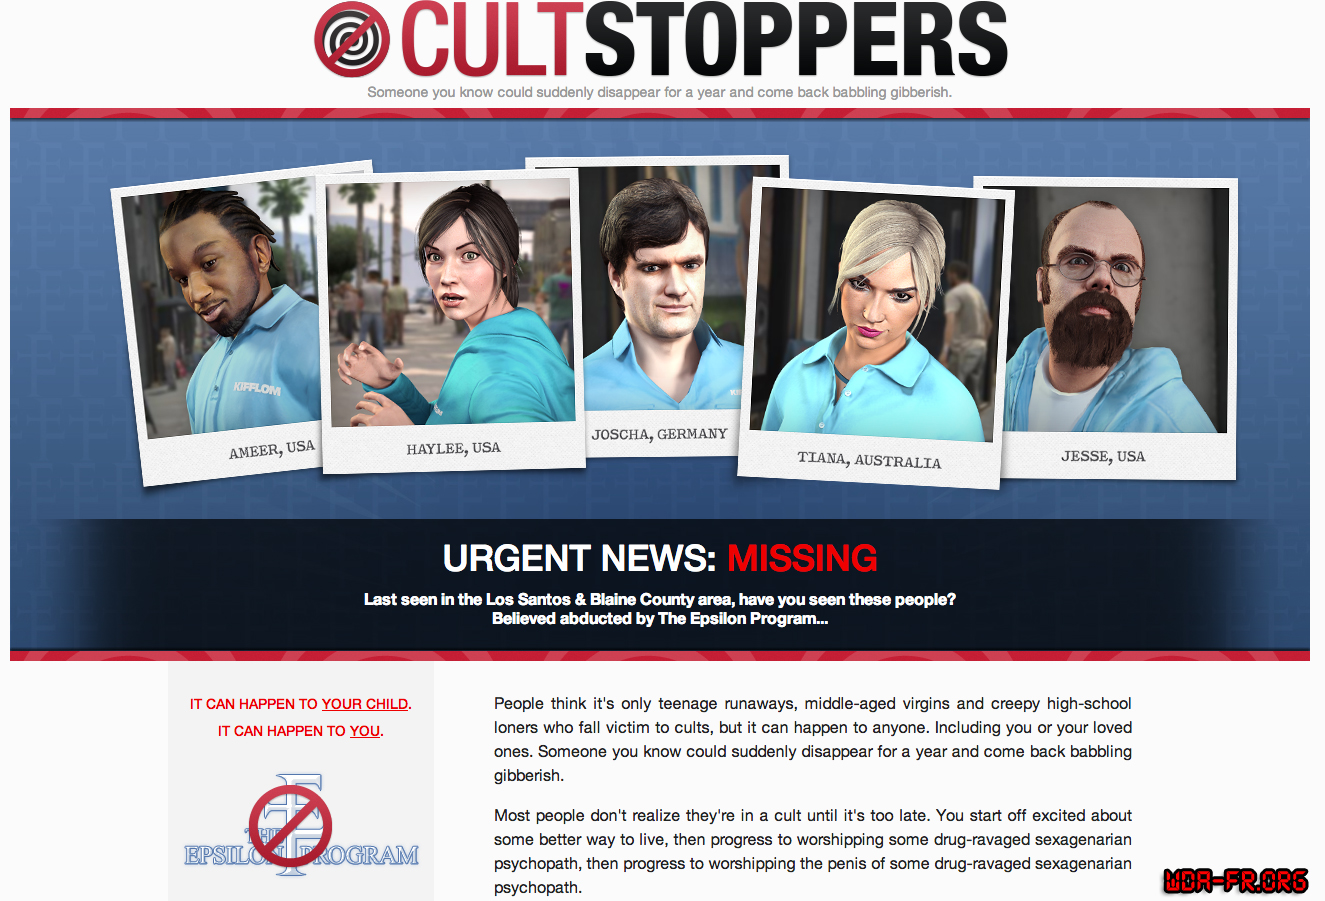 Cult_Stoppers.jpg